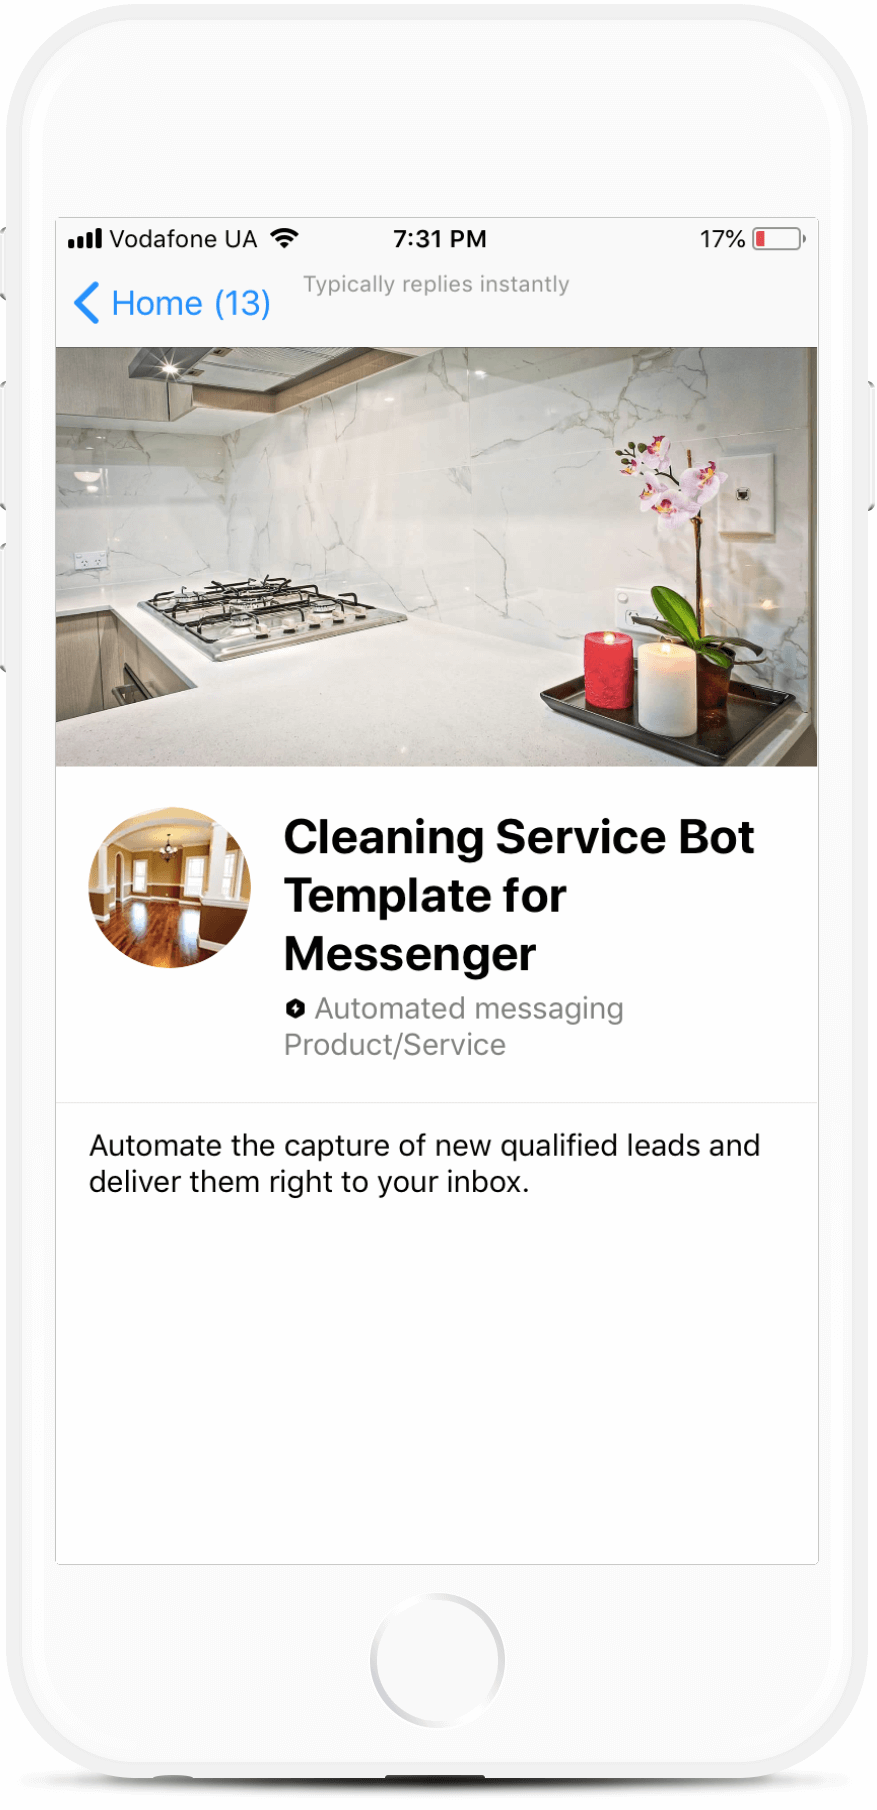 Cleaning Service Bot Template for Messenger